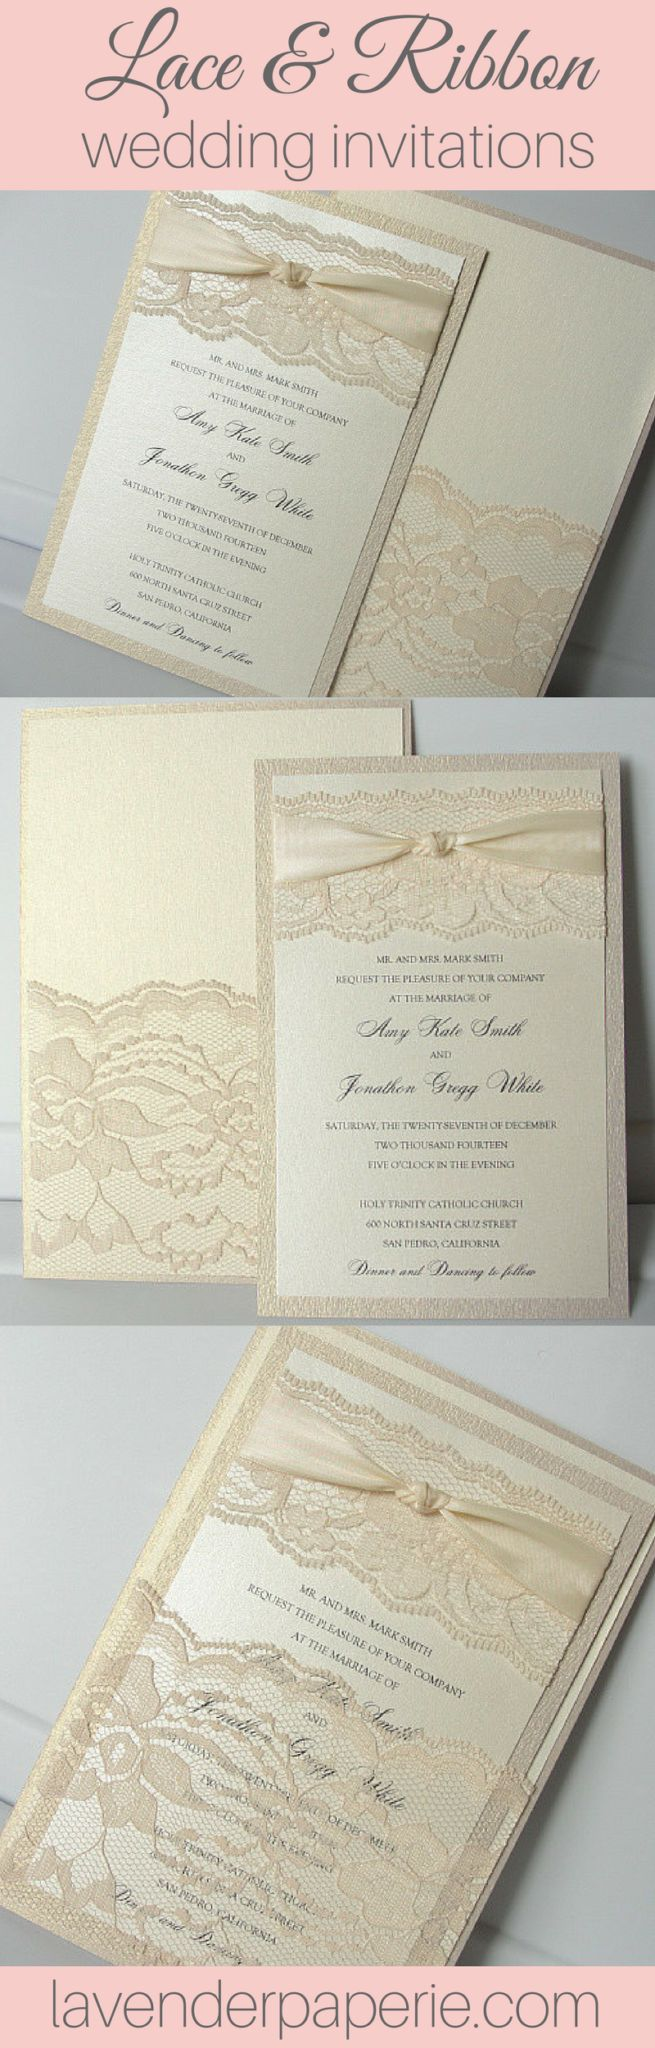 lace wedding invitation wrap%0A Lace and Pocketfold Wedding Invitations by Lavender Paperie   weddinginvitations  weddinginvites  elegantweddinginvites   classicweddinginvitations